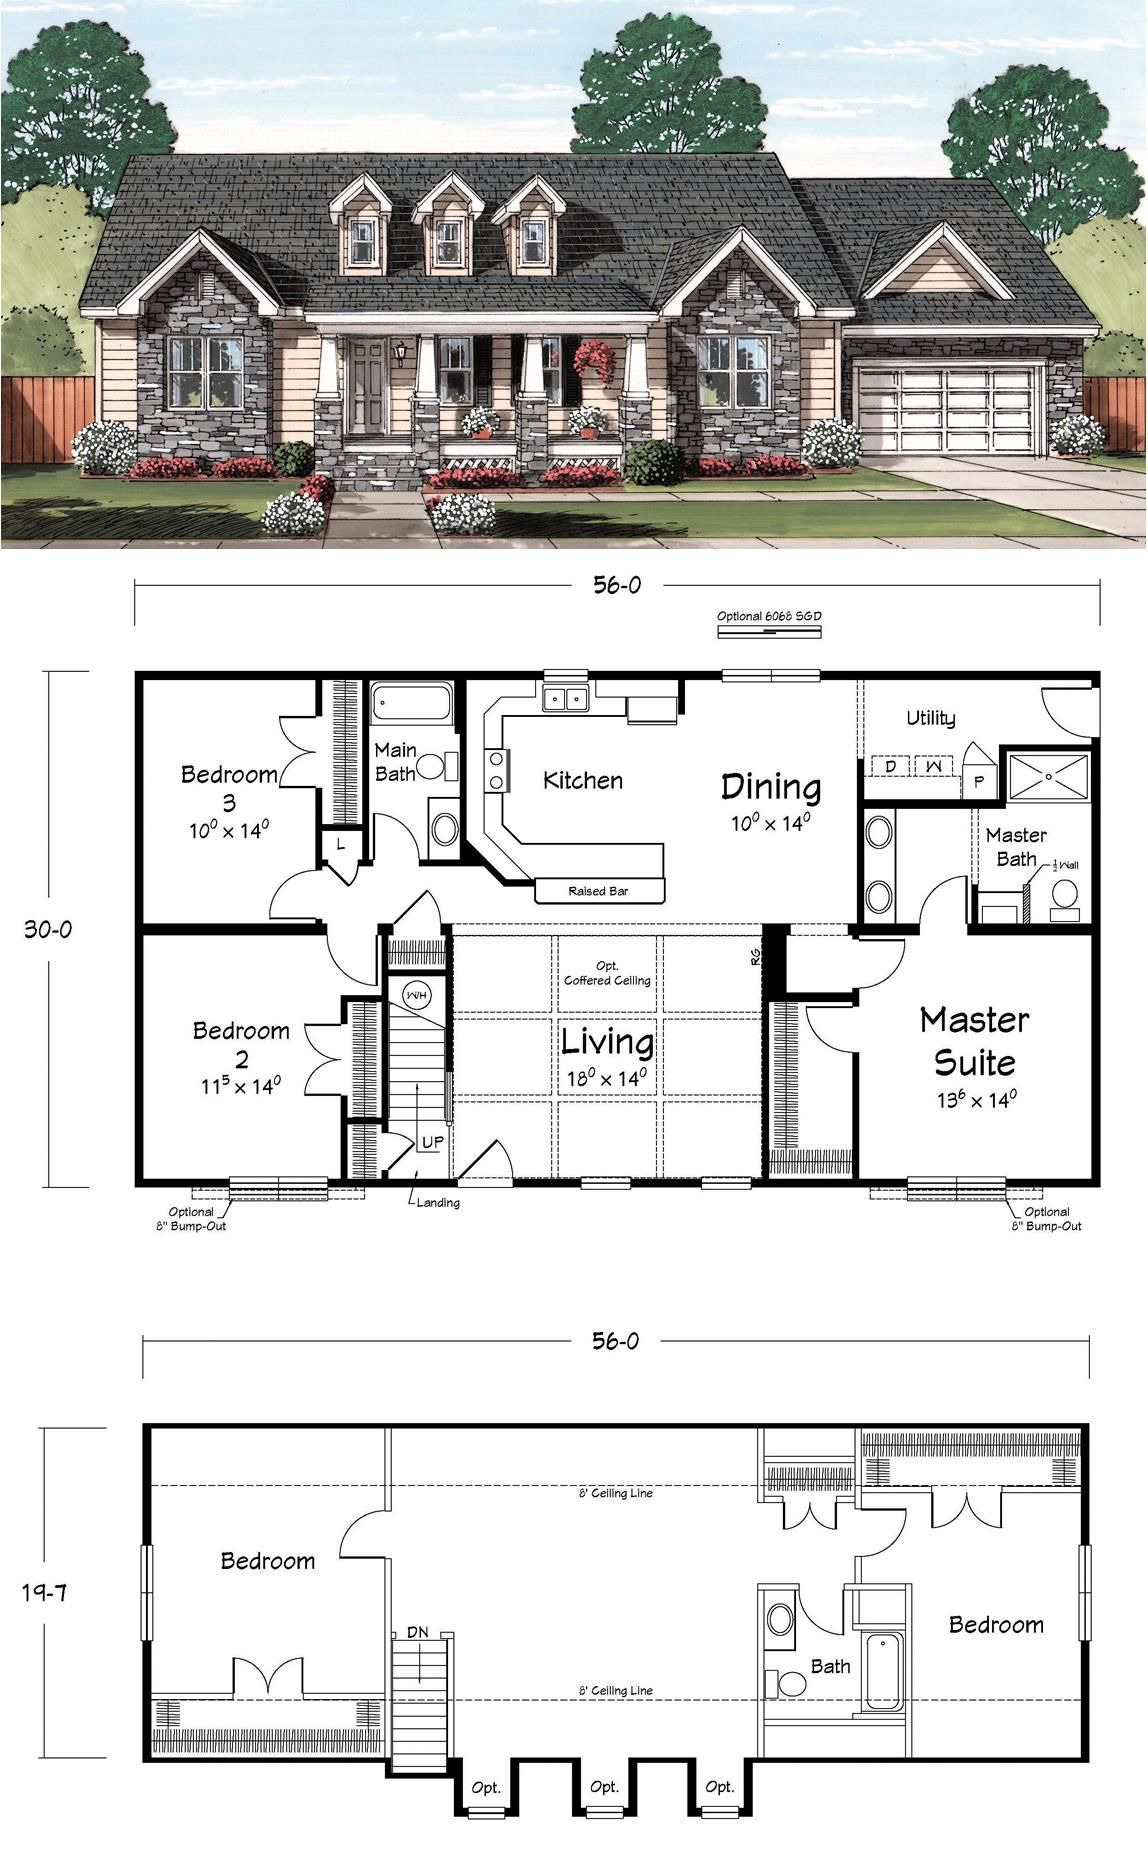 Addition to House Plans Awesome the Smithville Cape From Ritz Craft